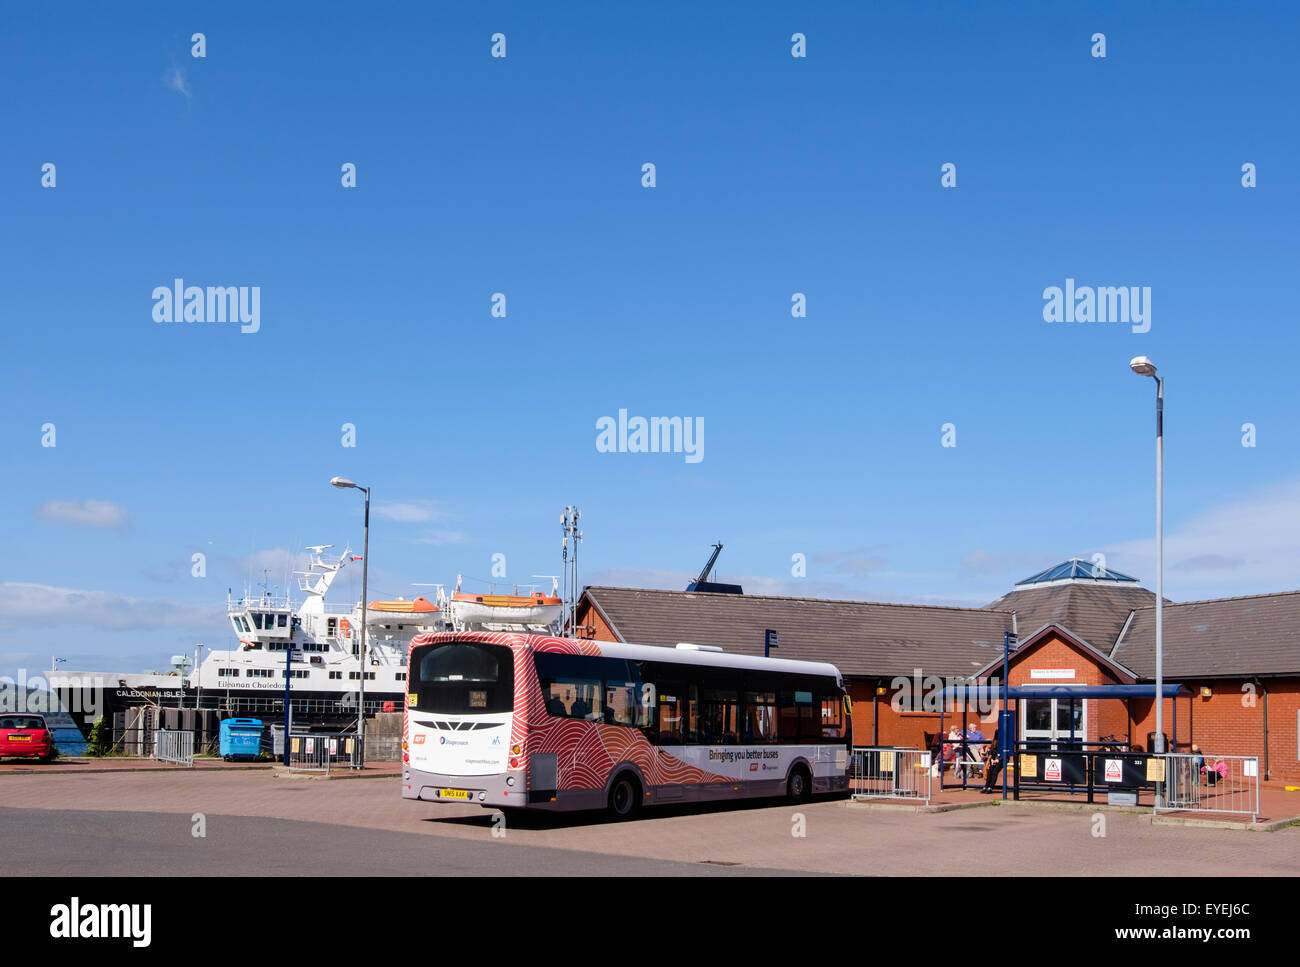 Stagecoach bus in the bus station by ferry port in Brodick, Isle of Arran, North Ayrshire, Western Isles, Scotland, - Stock Image